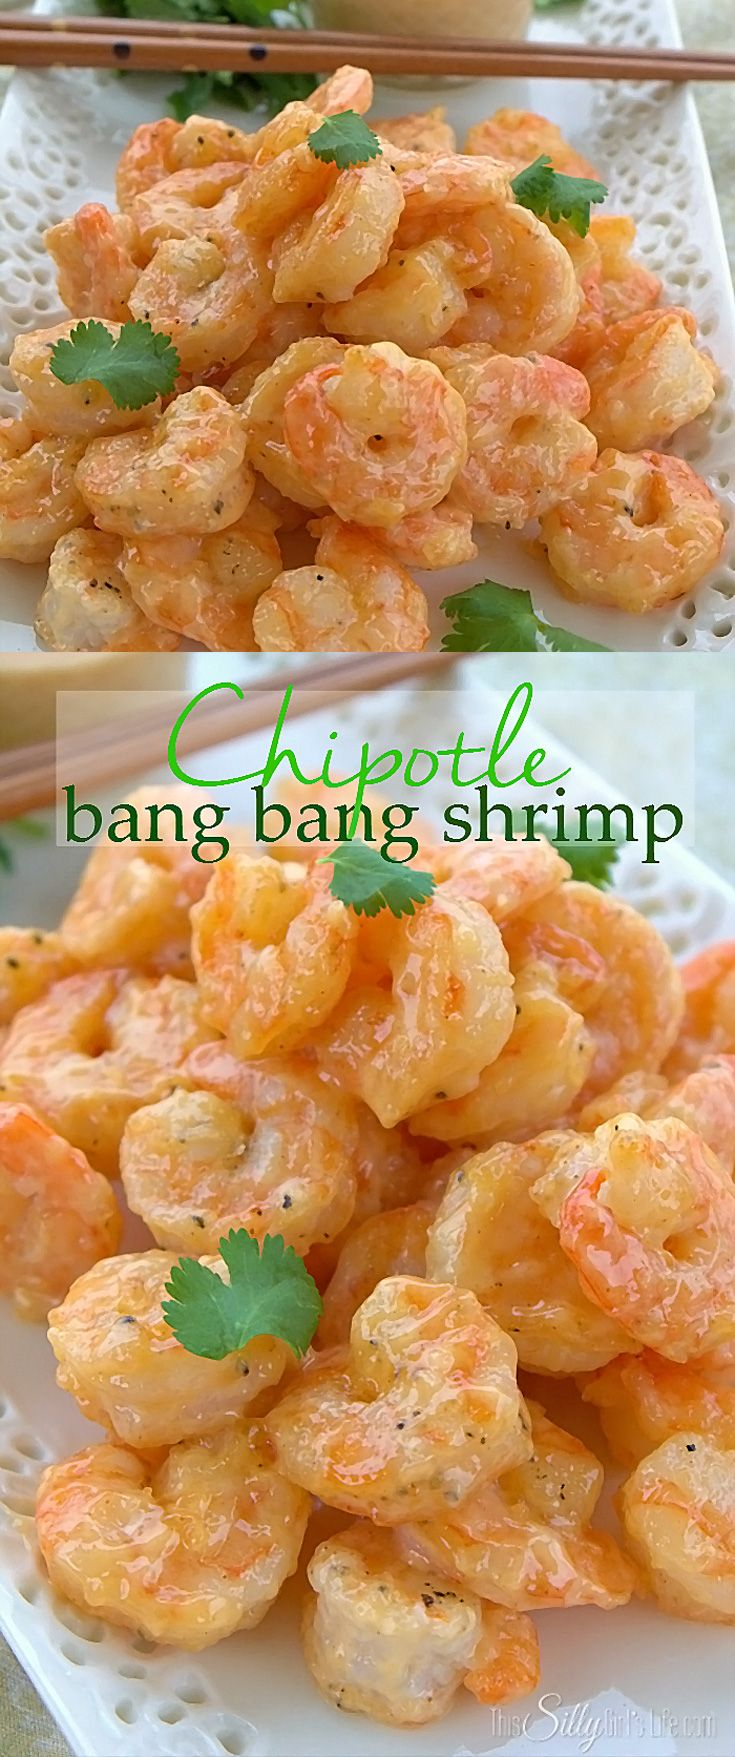 Chipotle Bang Bang Shrimp, pan fried shrimp tossed in a creamy sweet and smokey sauce!